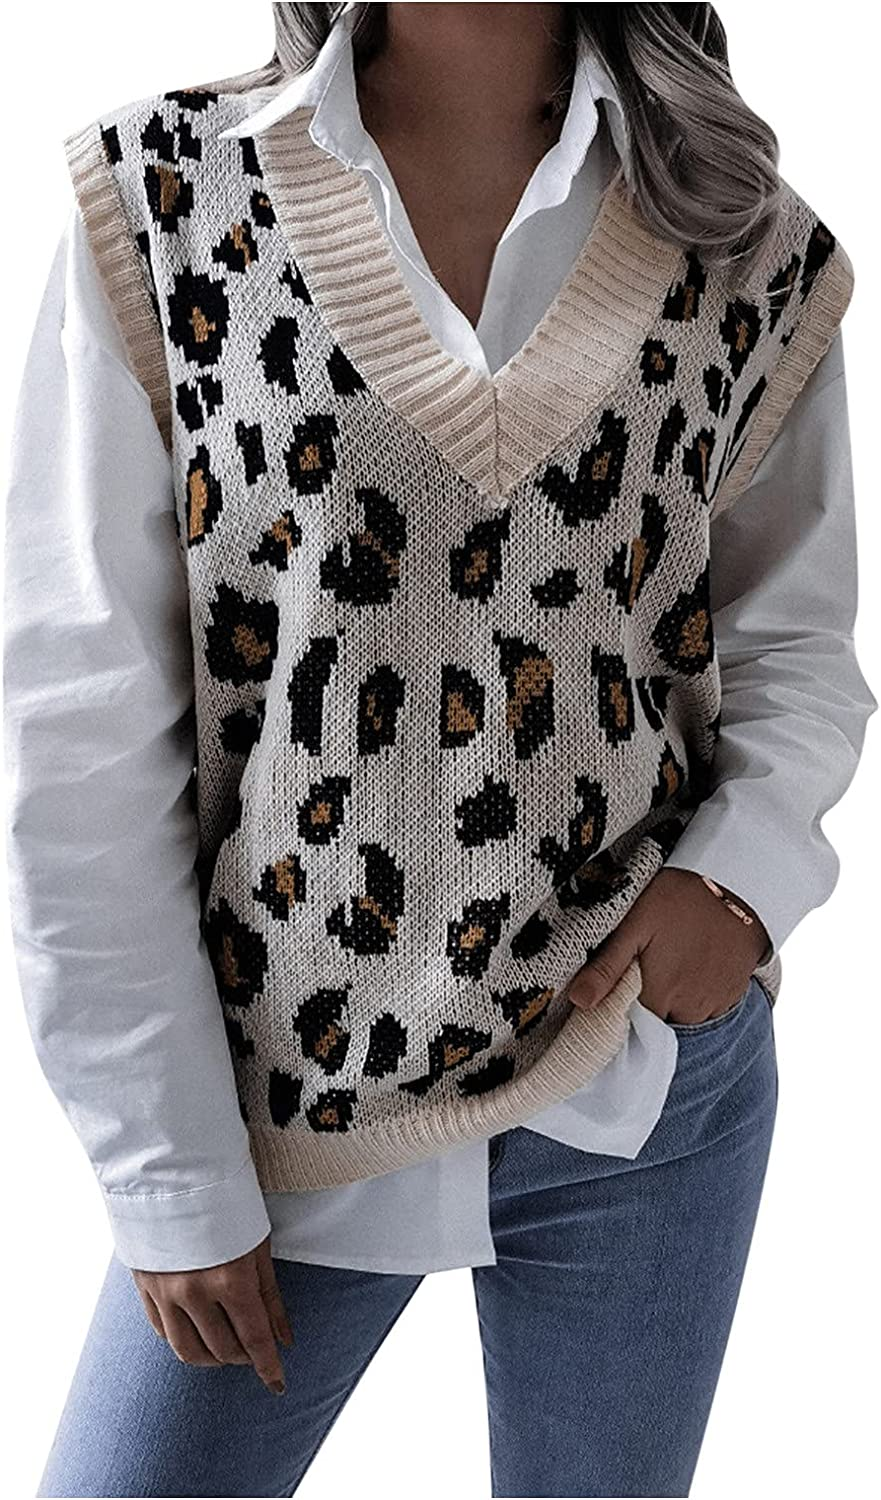 RUIY Fall Sweater Vest Women, Women Knitted V Neck Sleeveless Sweaters Knitwear Tank Tops,Loose Chunky Knitted Pullover Sweater Jumper